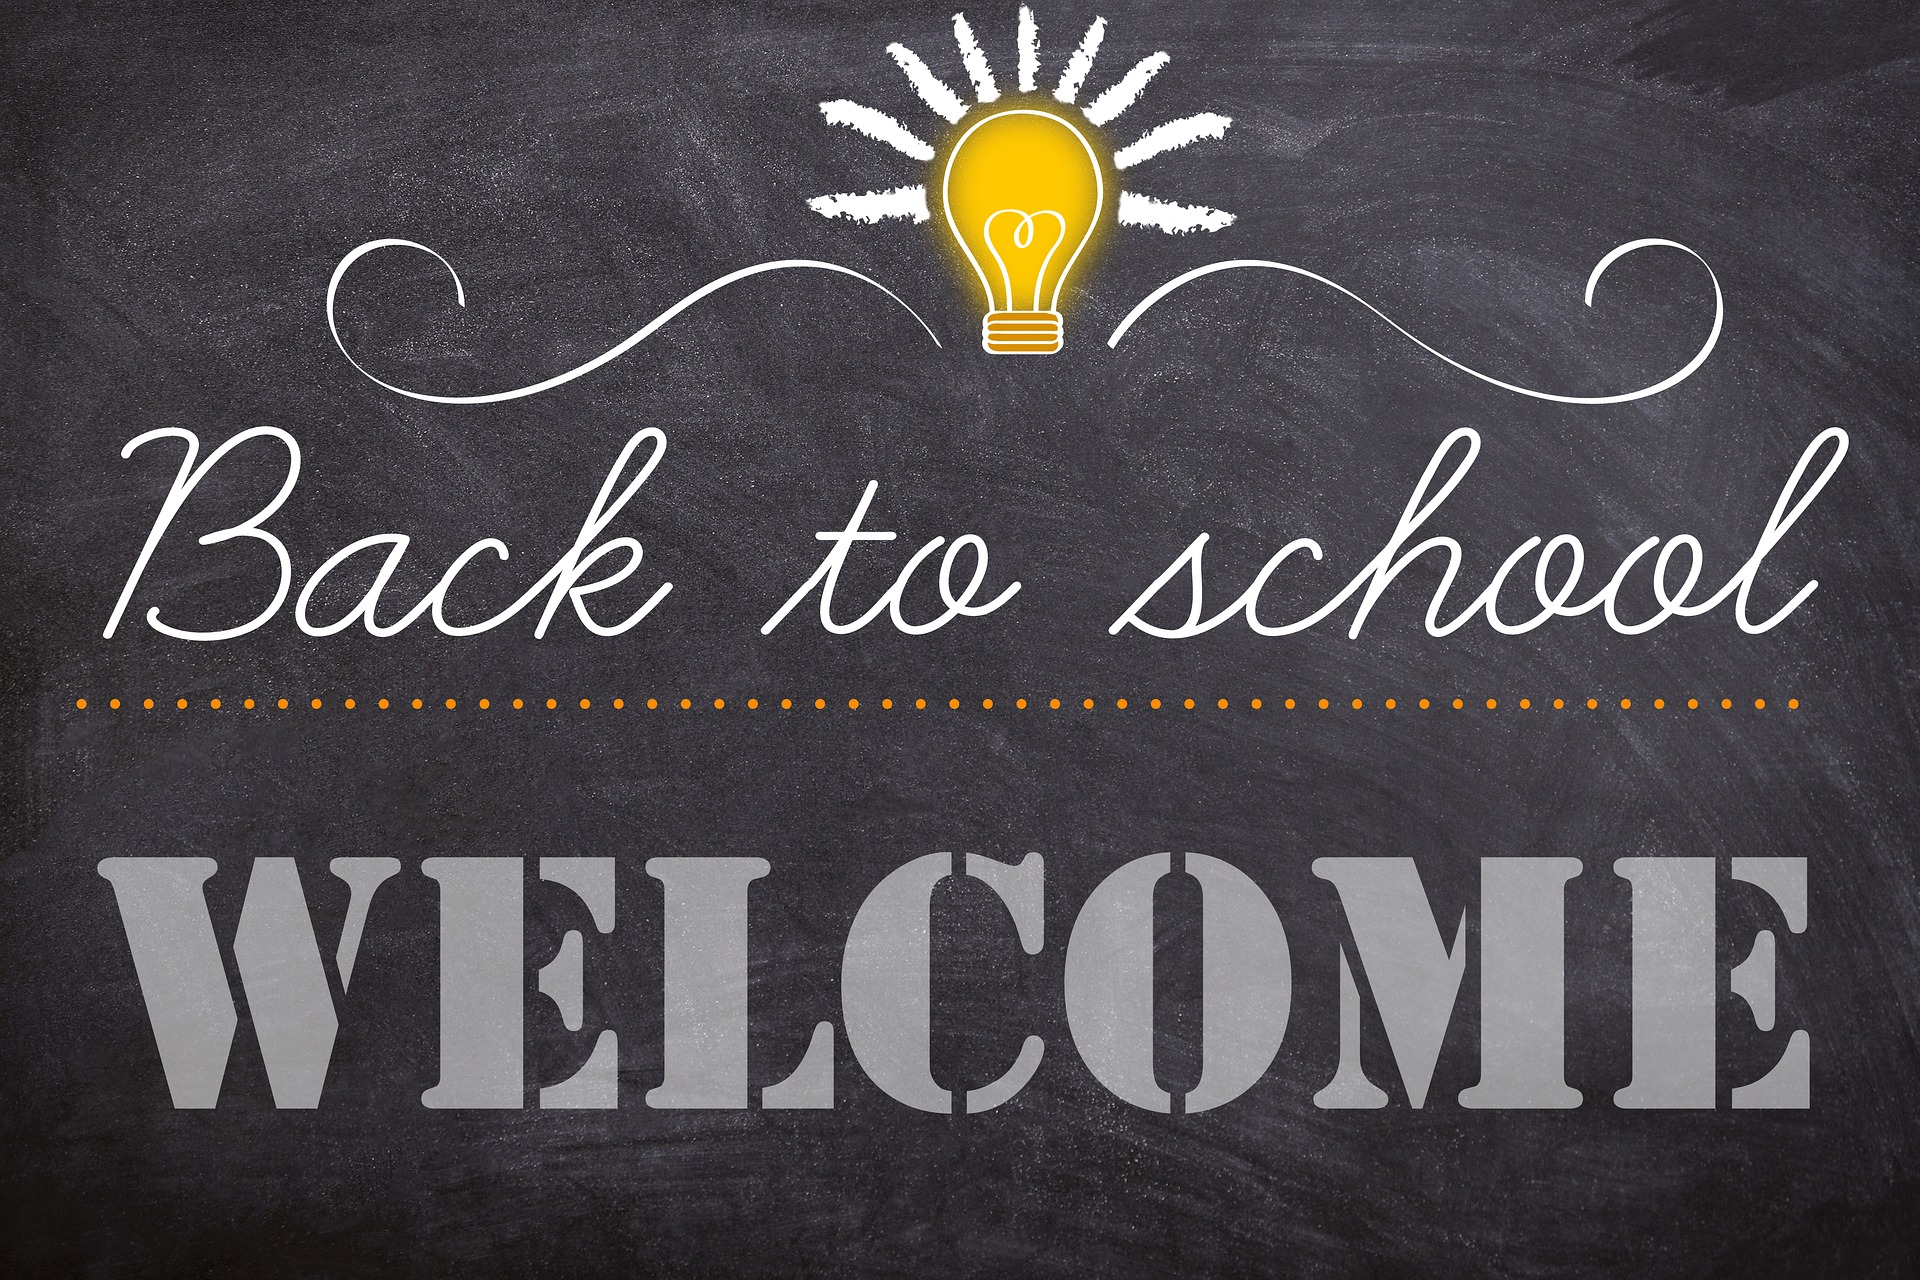 Welcome back to school chalkboard sign